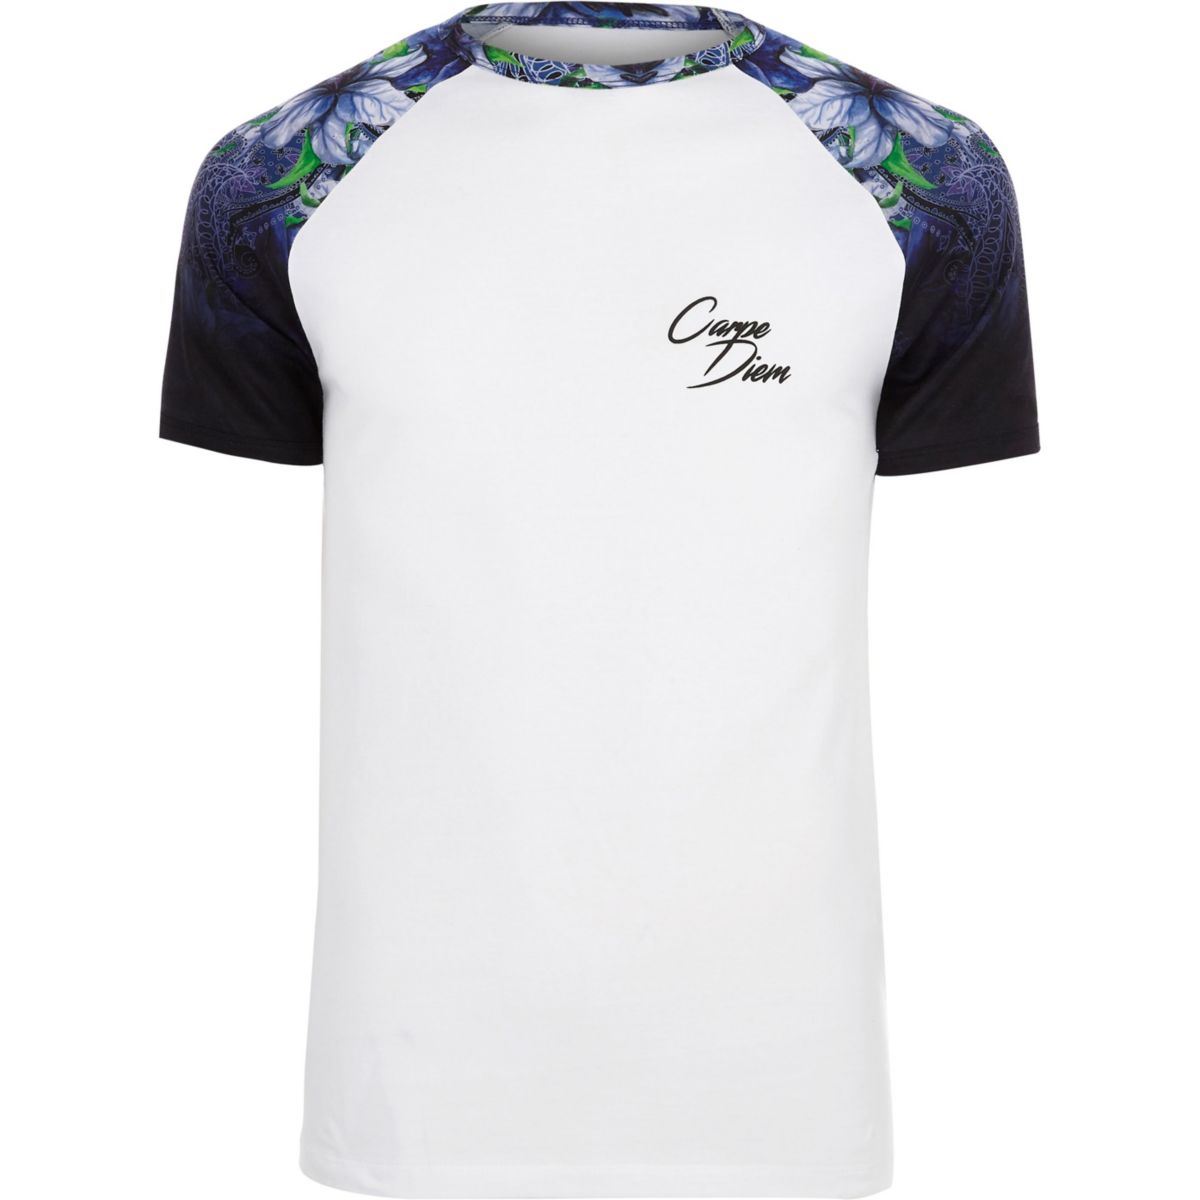 T floral muscle fit raglan shirt White Pgnpn